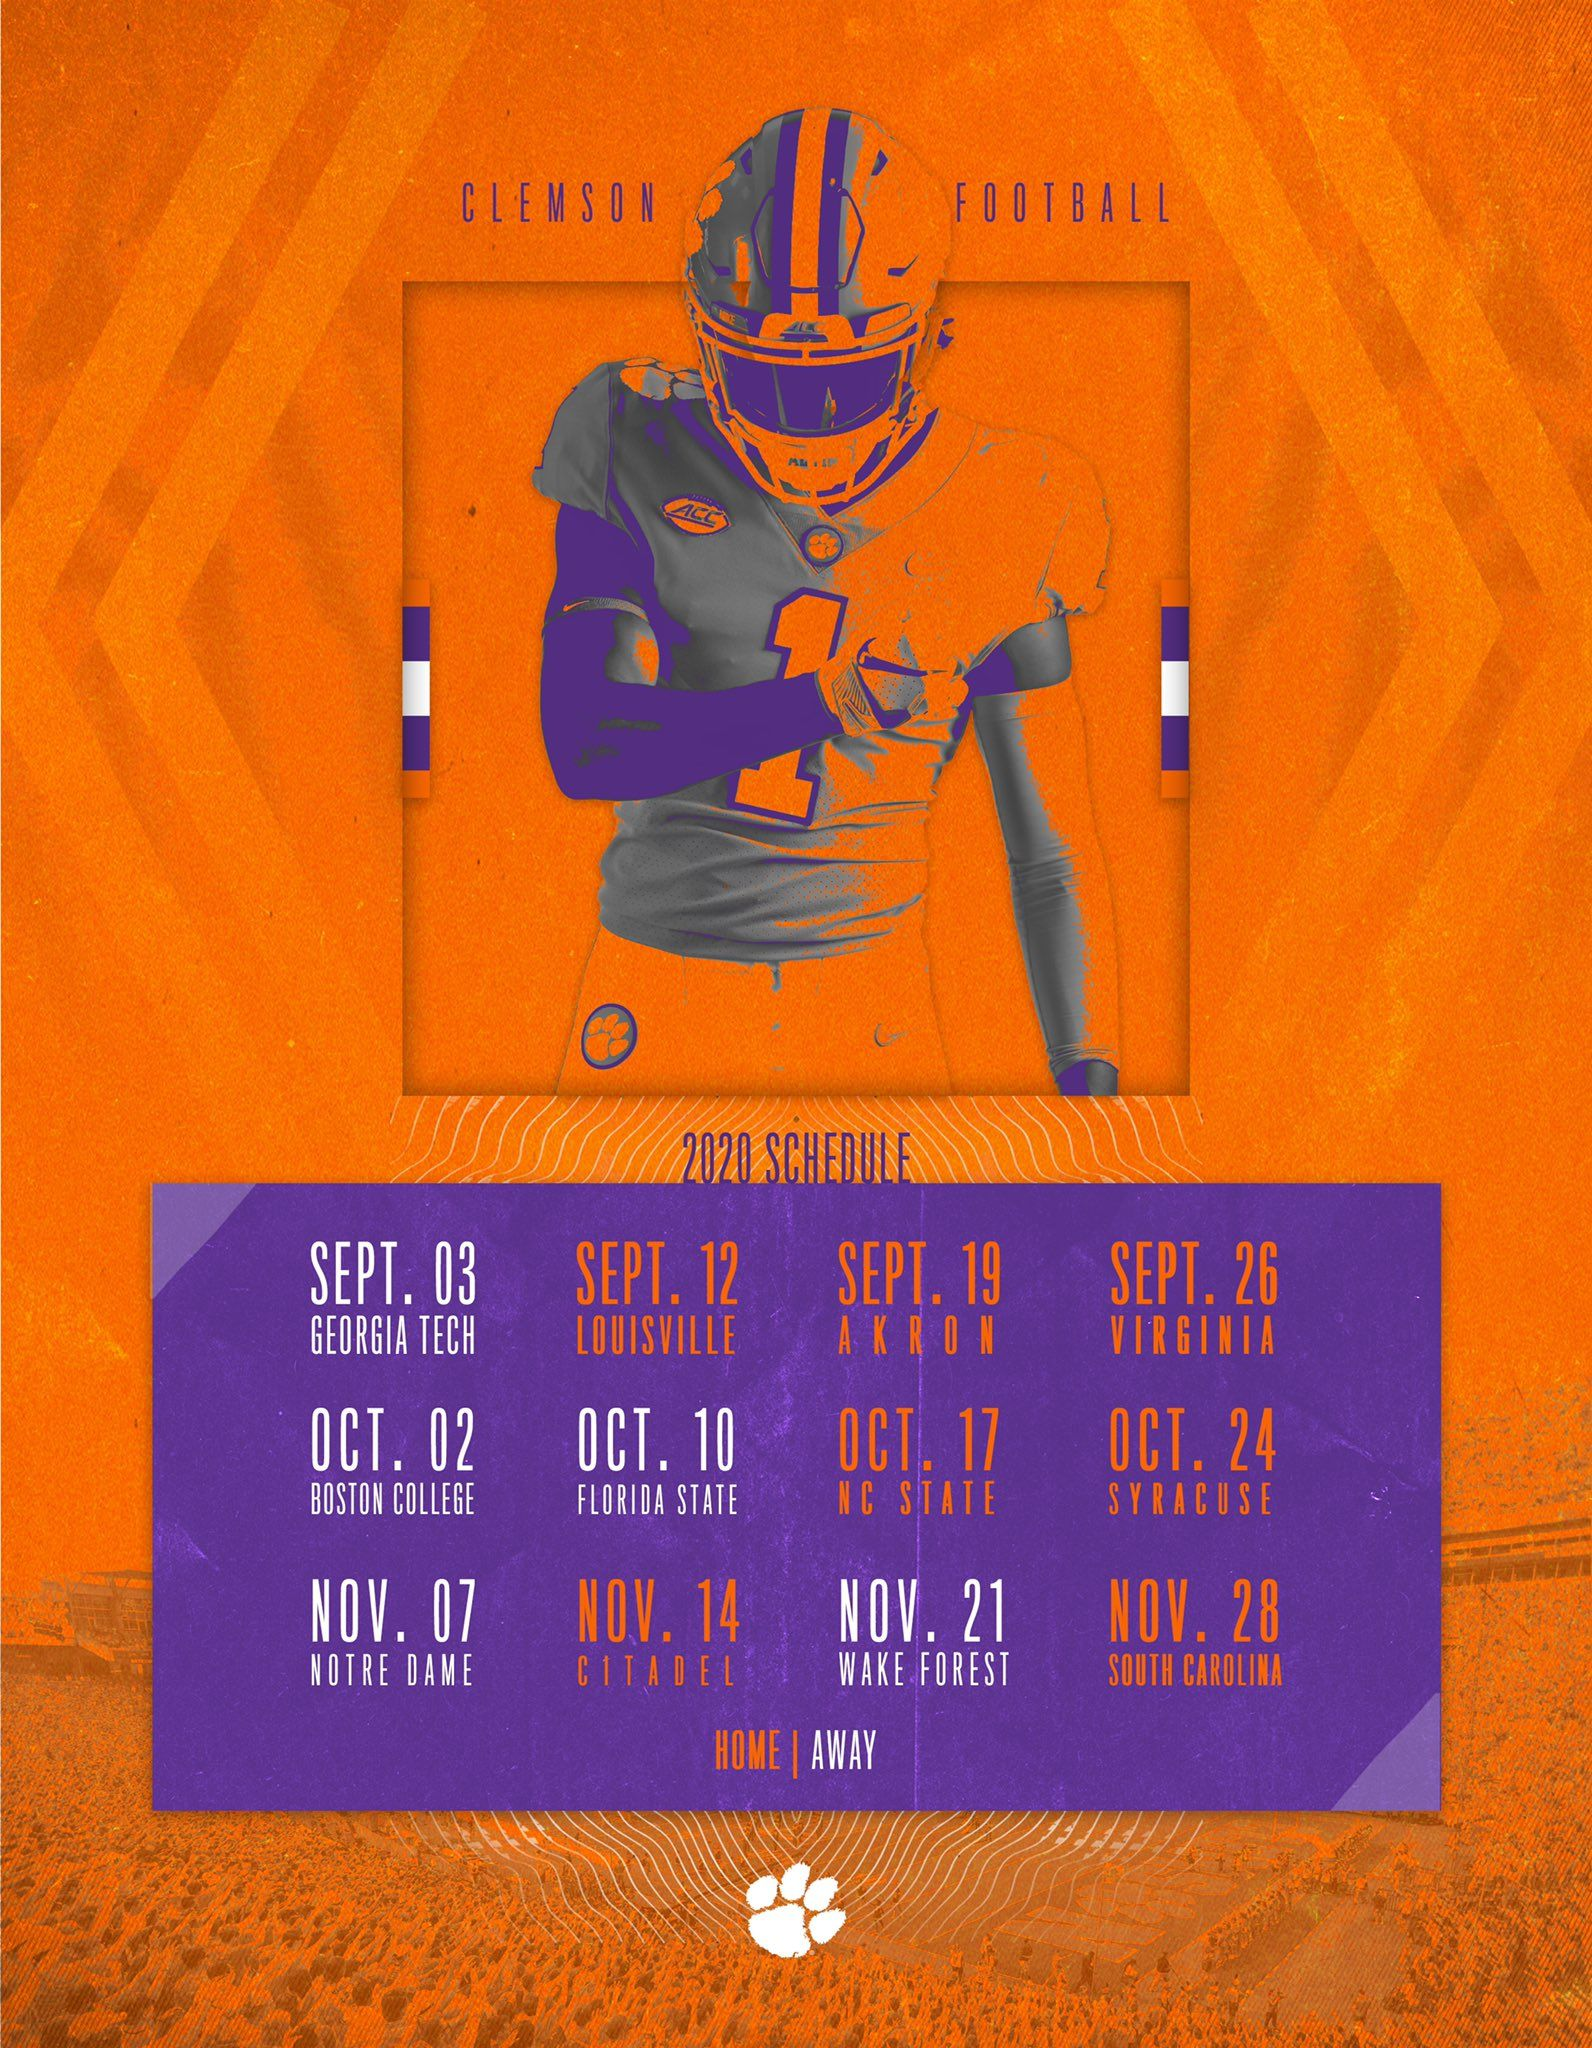 2020 Clemson football schedule in 2020 Clemson football